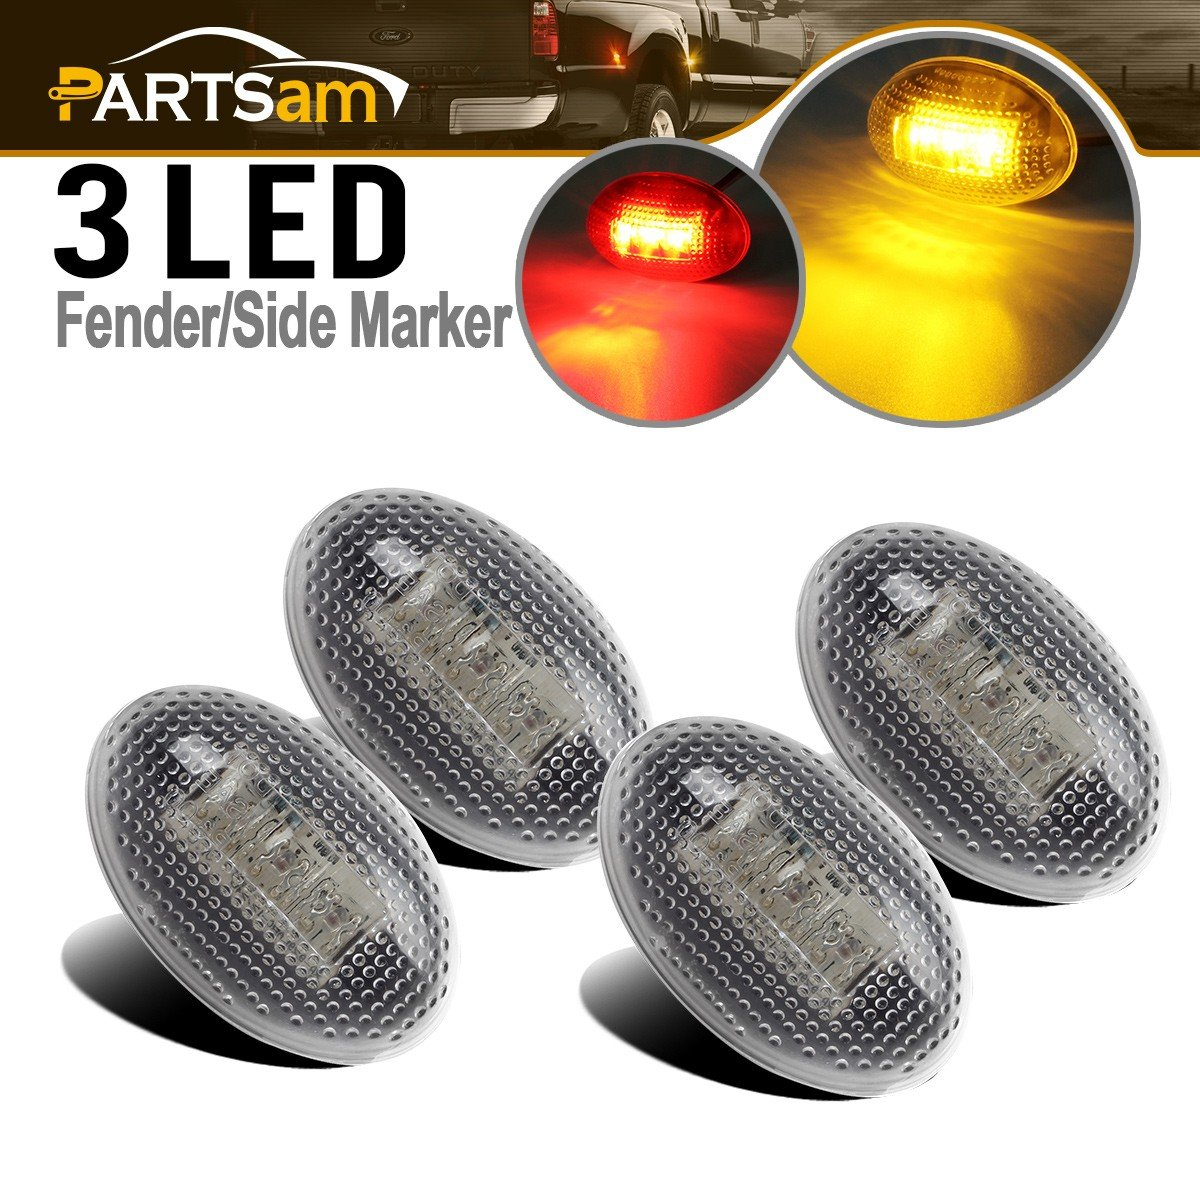 Partsam 2x Amber + 2x Red Side Fender Marker Assembly For 1999-2010 FORD F350 F450 F550, Full Kit Dually Bed Fender Side Marker Lights LED Ford Super Duty Aftermarket Replacement Front Rear